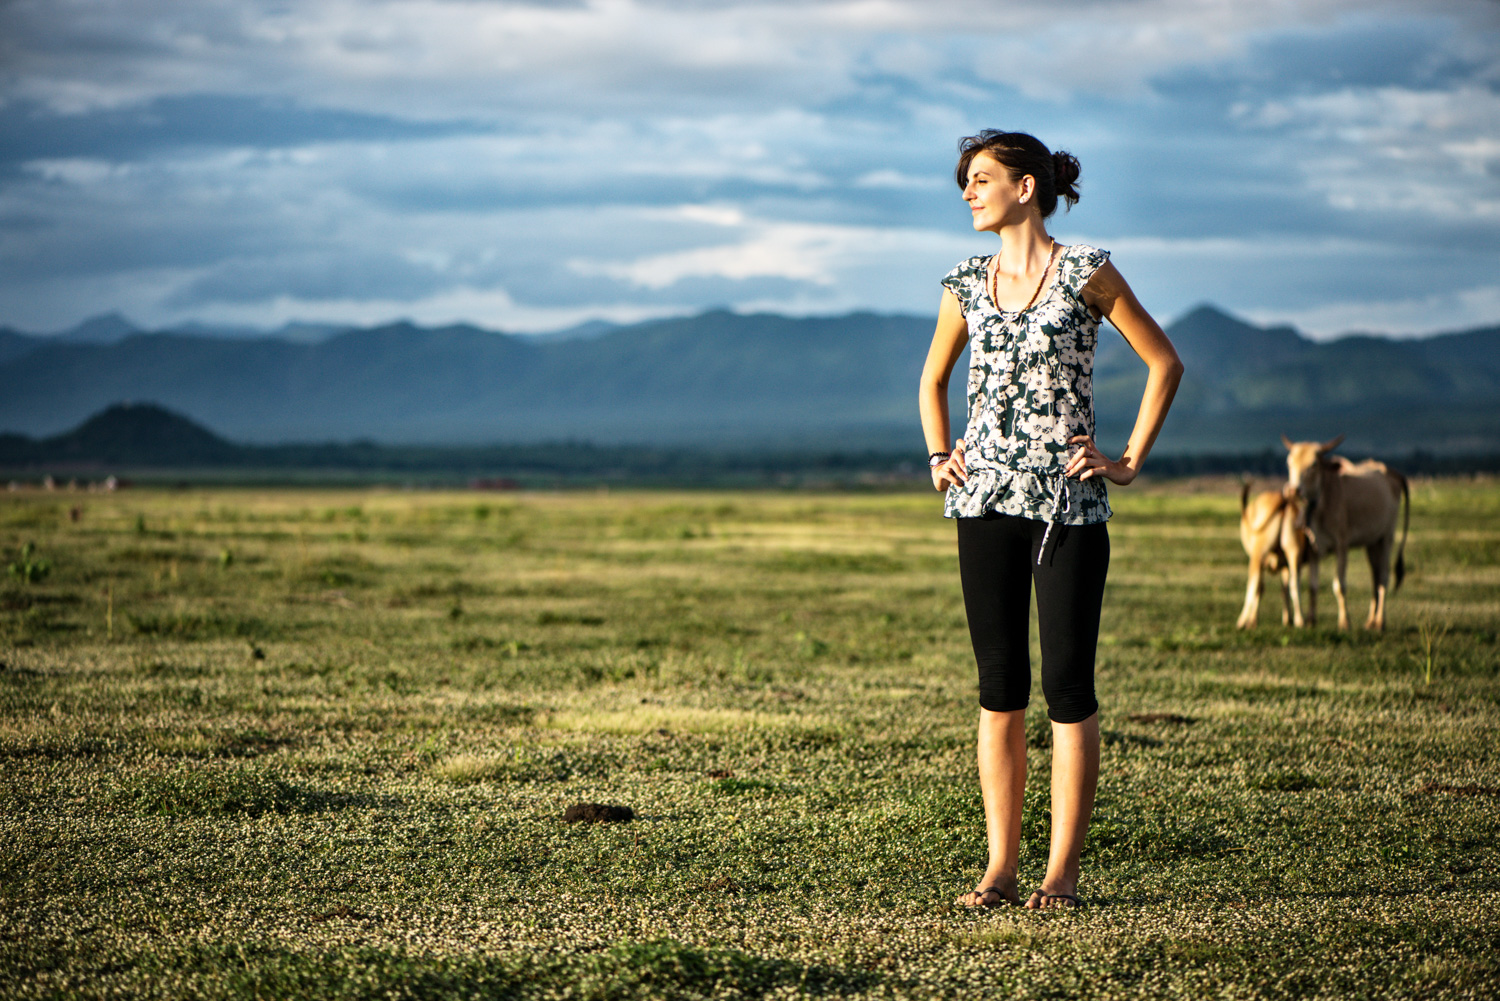 woman out standing in a field for cropping photos